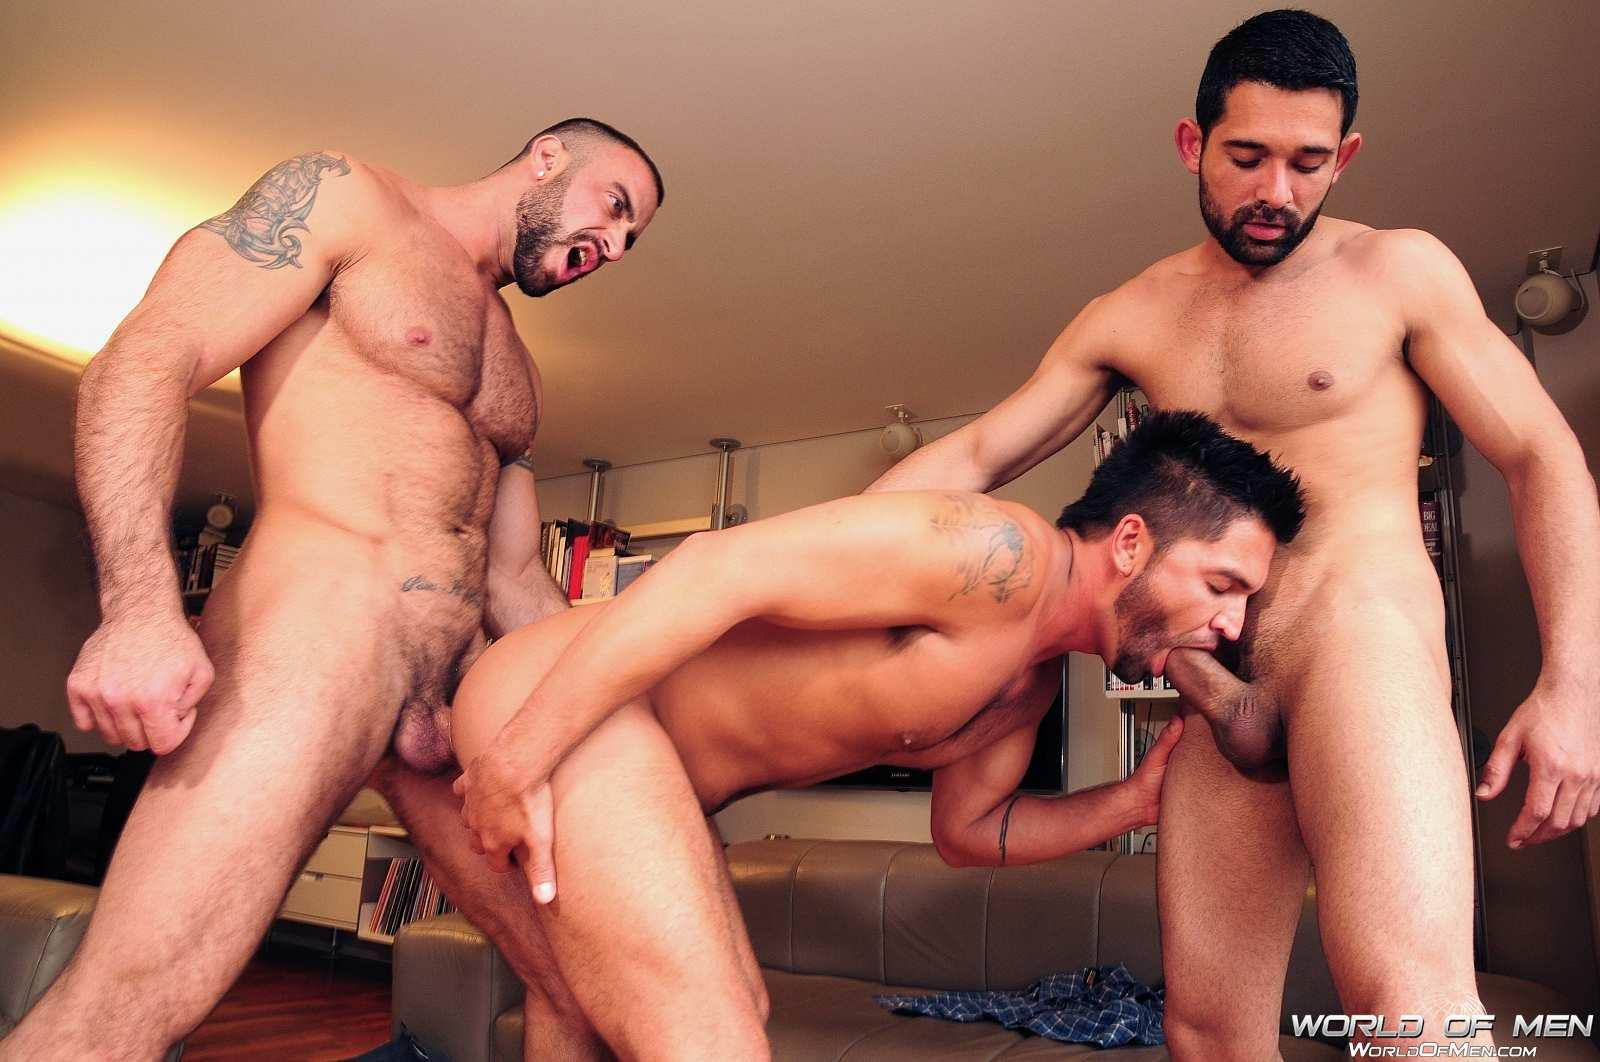 World Of Men Spencer Reed and Dominic Pacifico and Billy Baval Taking Two Huge Cocks Up The Ass Tagteam Amateur Gay Porn 07 Dominic Pacifico Getting Tag Teamed By Two Huge Cocks